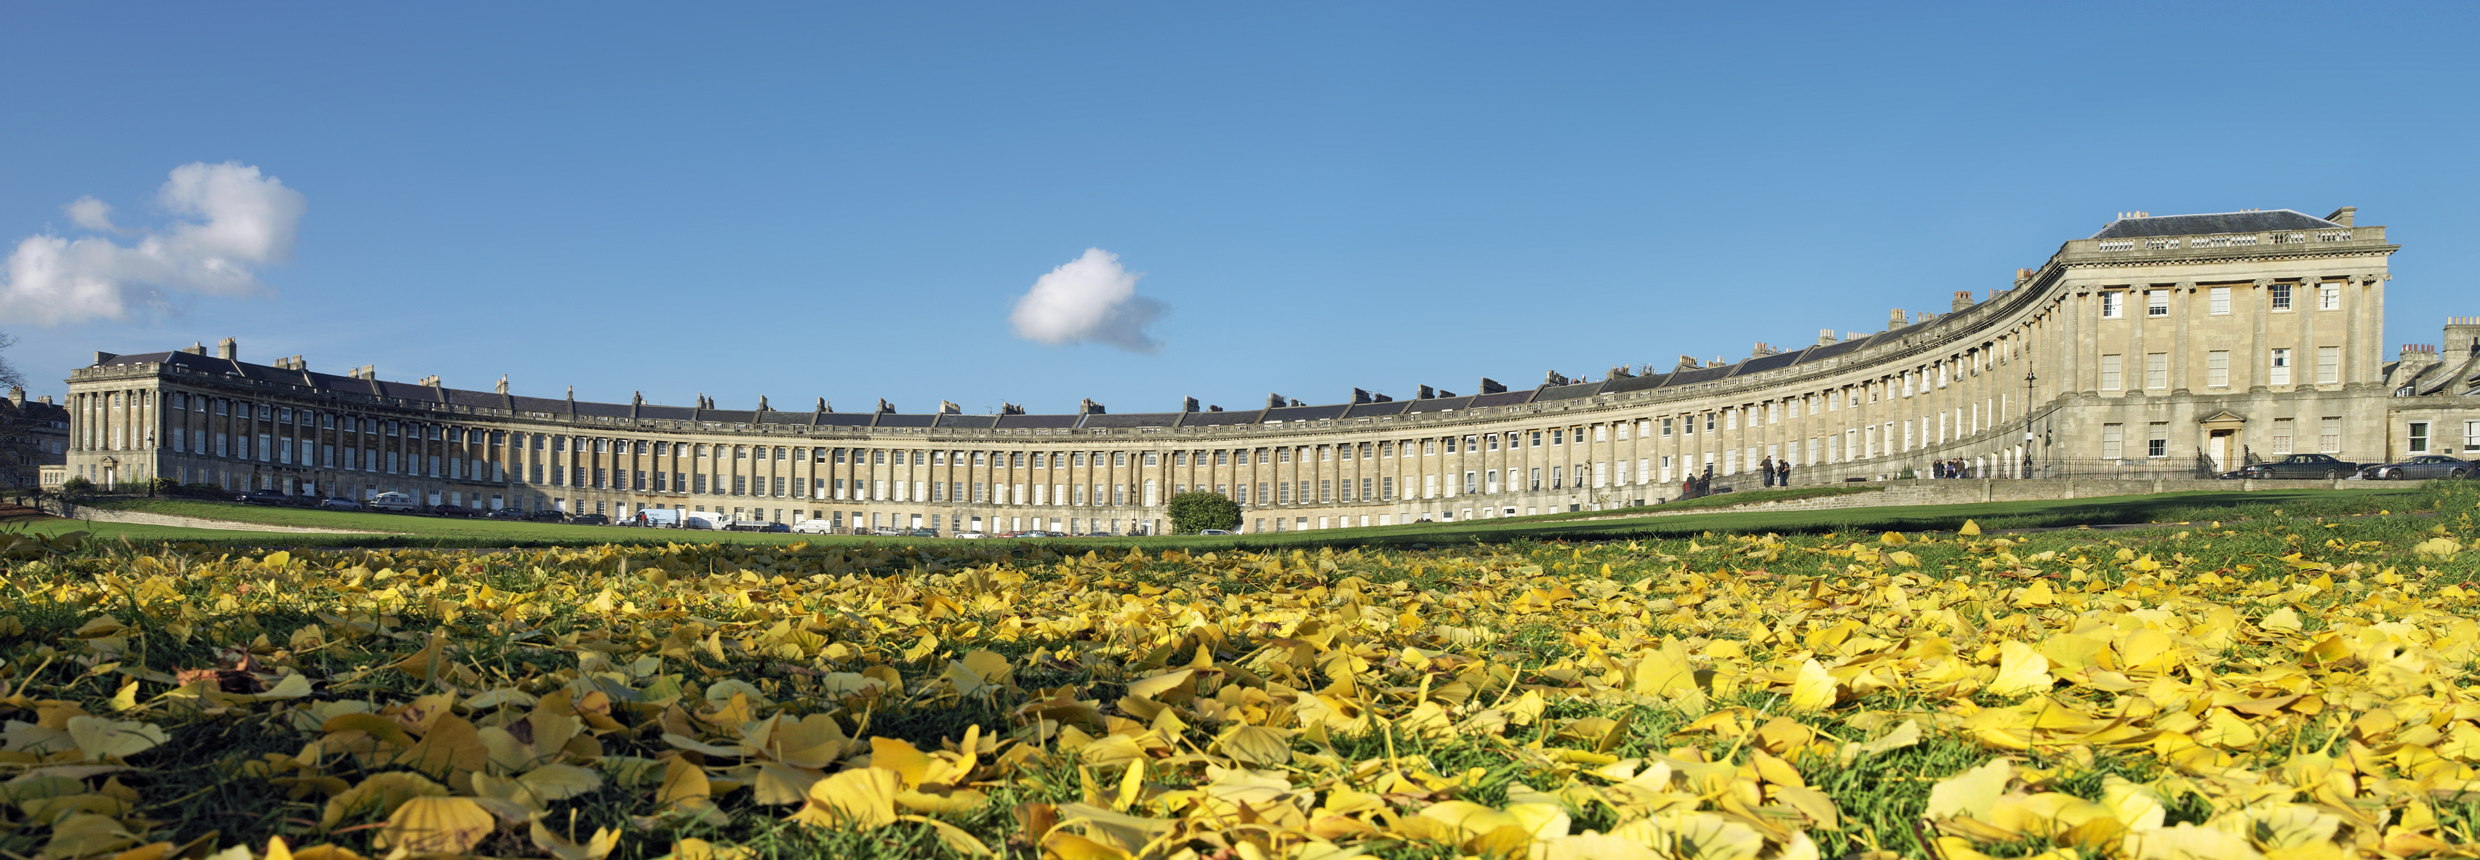 Royal Crescent Hotel and Spa Review, Royal Crescent Hotel bath Review, Royal Crescent Hotel, Royal Crescent Hotel bath review